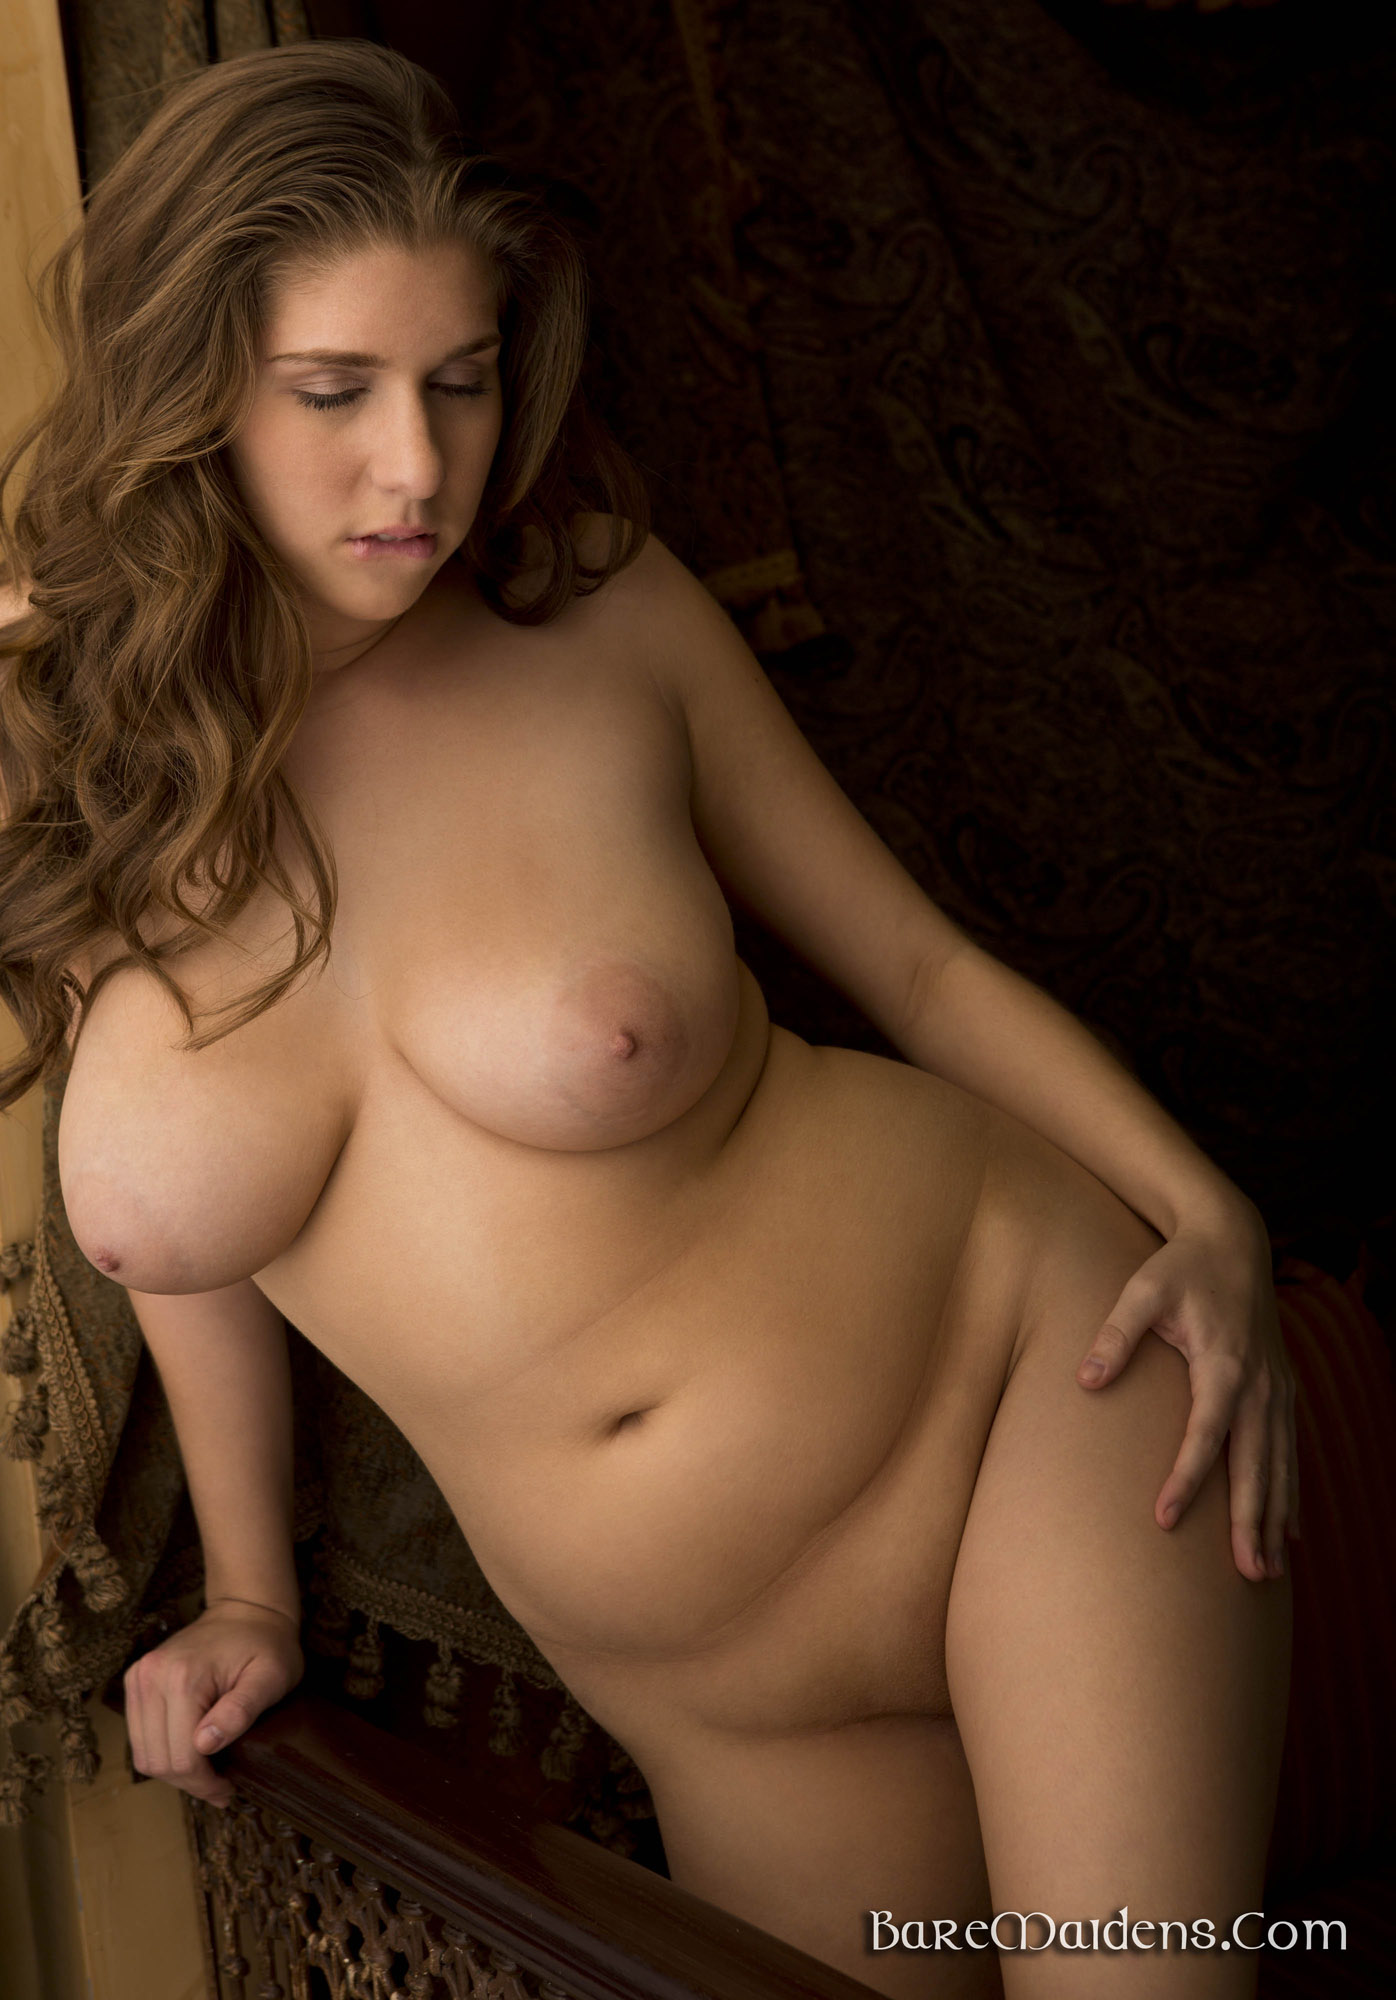 sexy nude woman beautiful rounded breasts